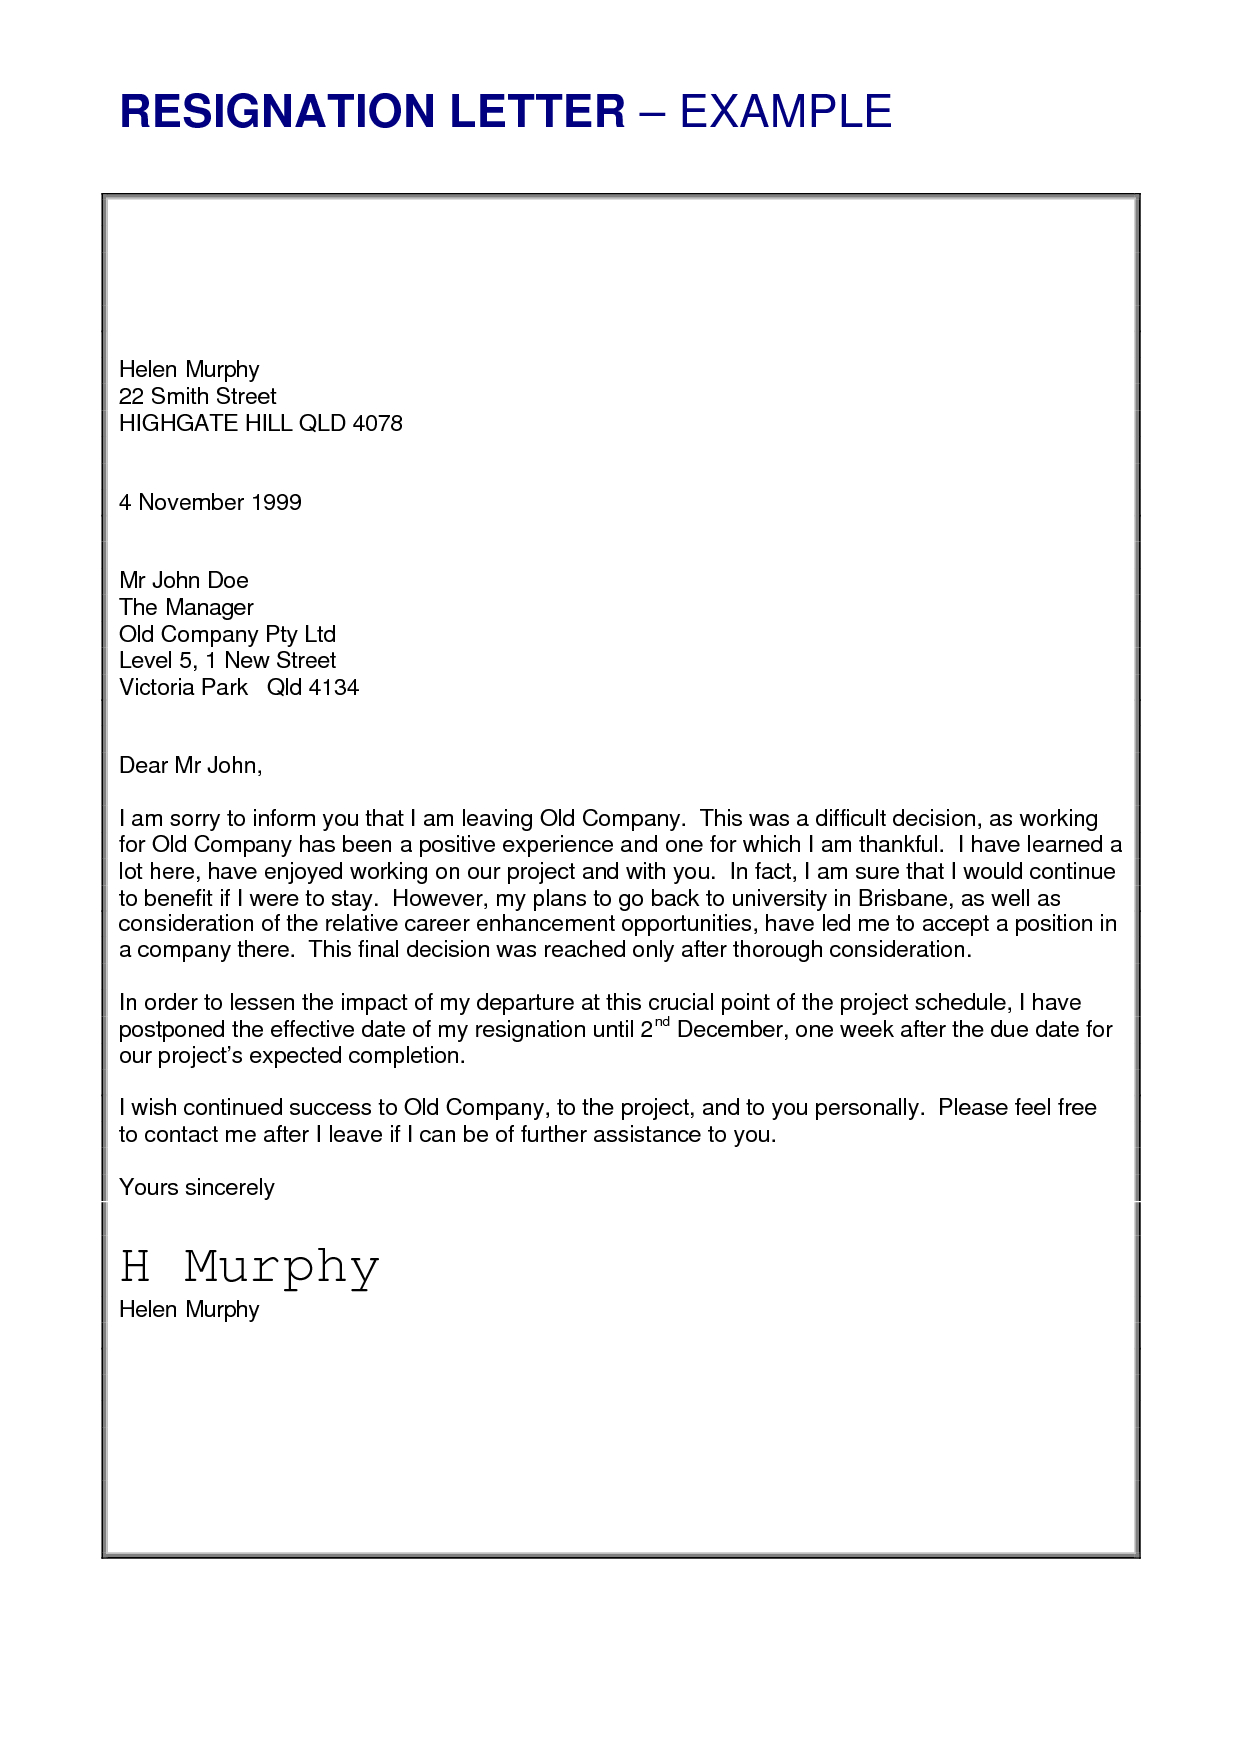 Free Printable Resignation Letter Template - Job Resignation Letter Sample Loganun Blog Job